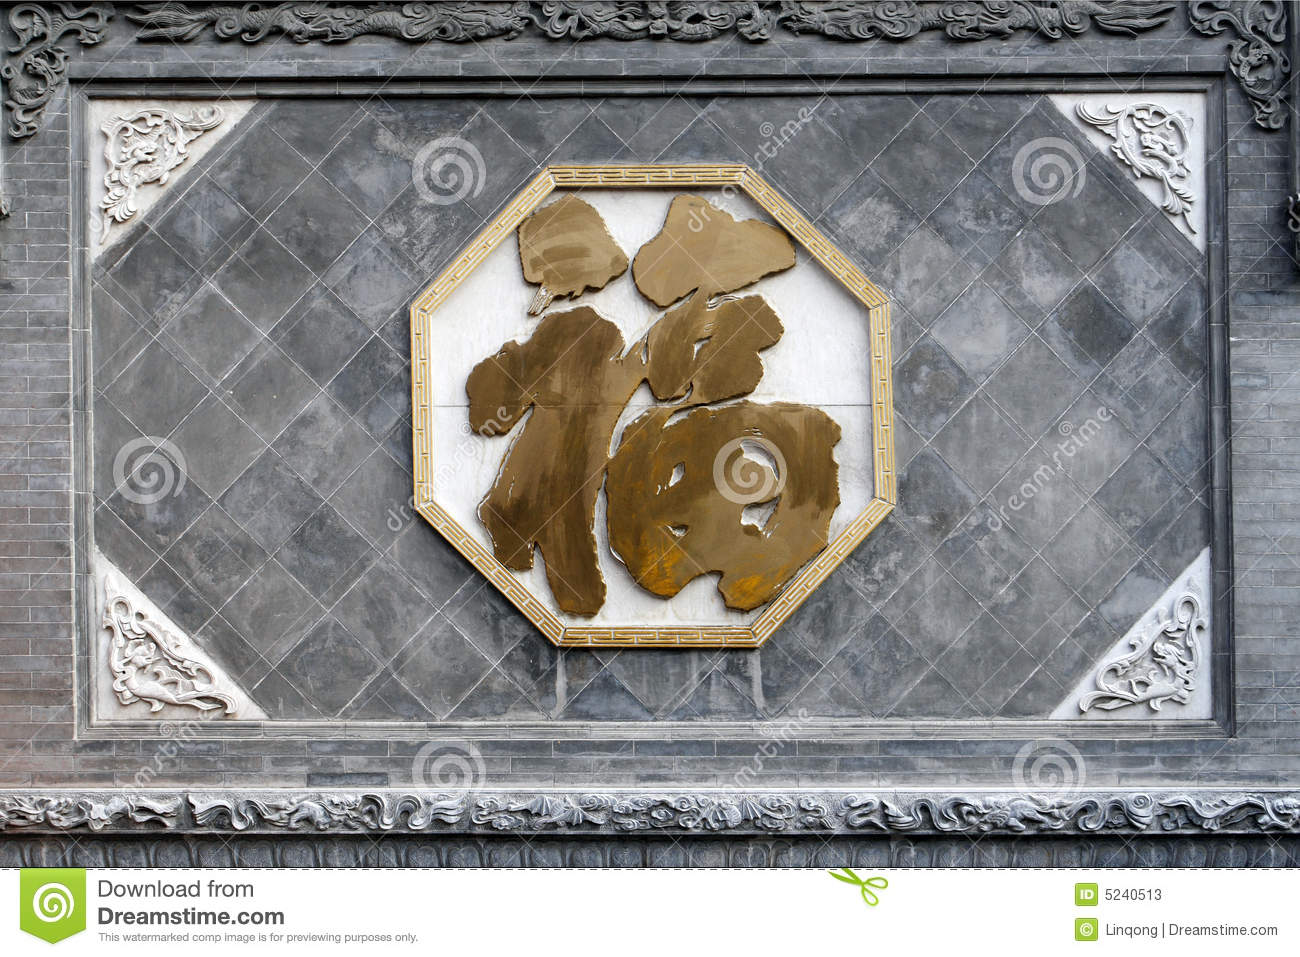 Exquisite stone carvings stock photos image 5240513 for Exquisite stone